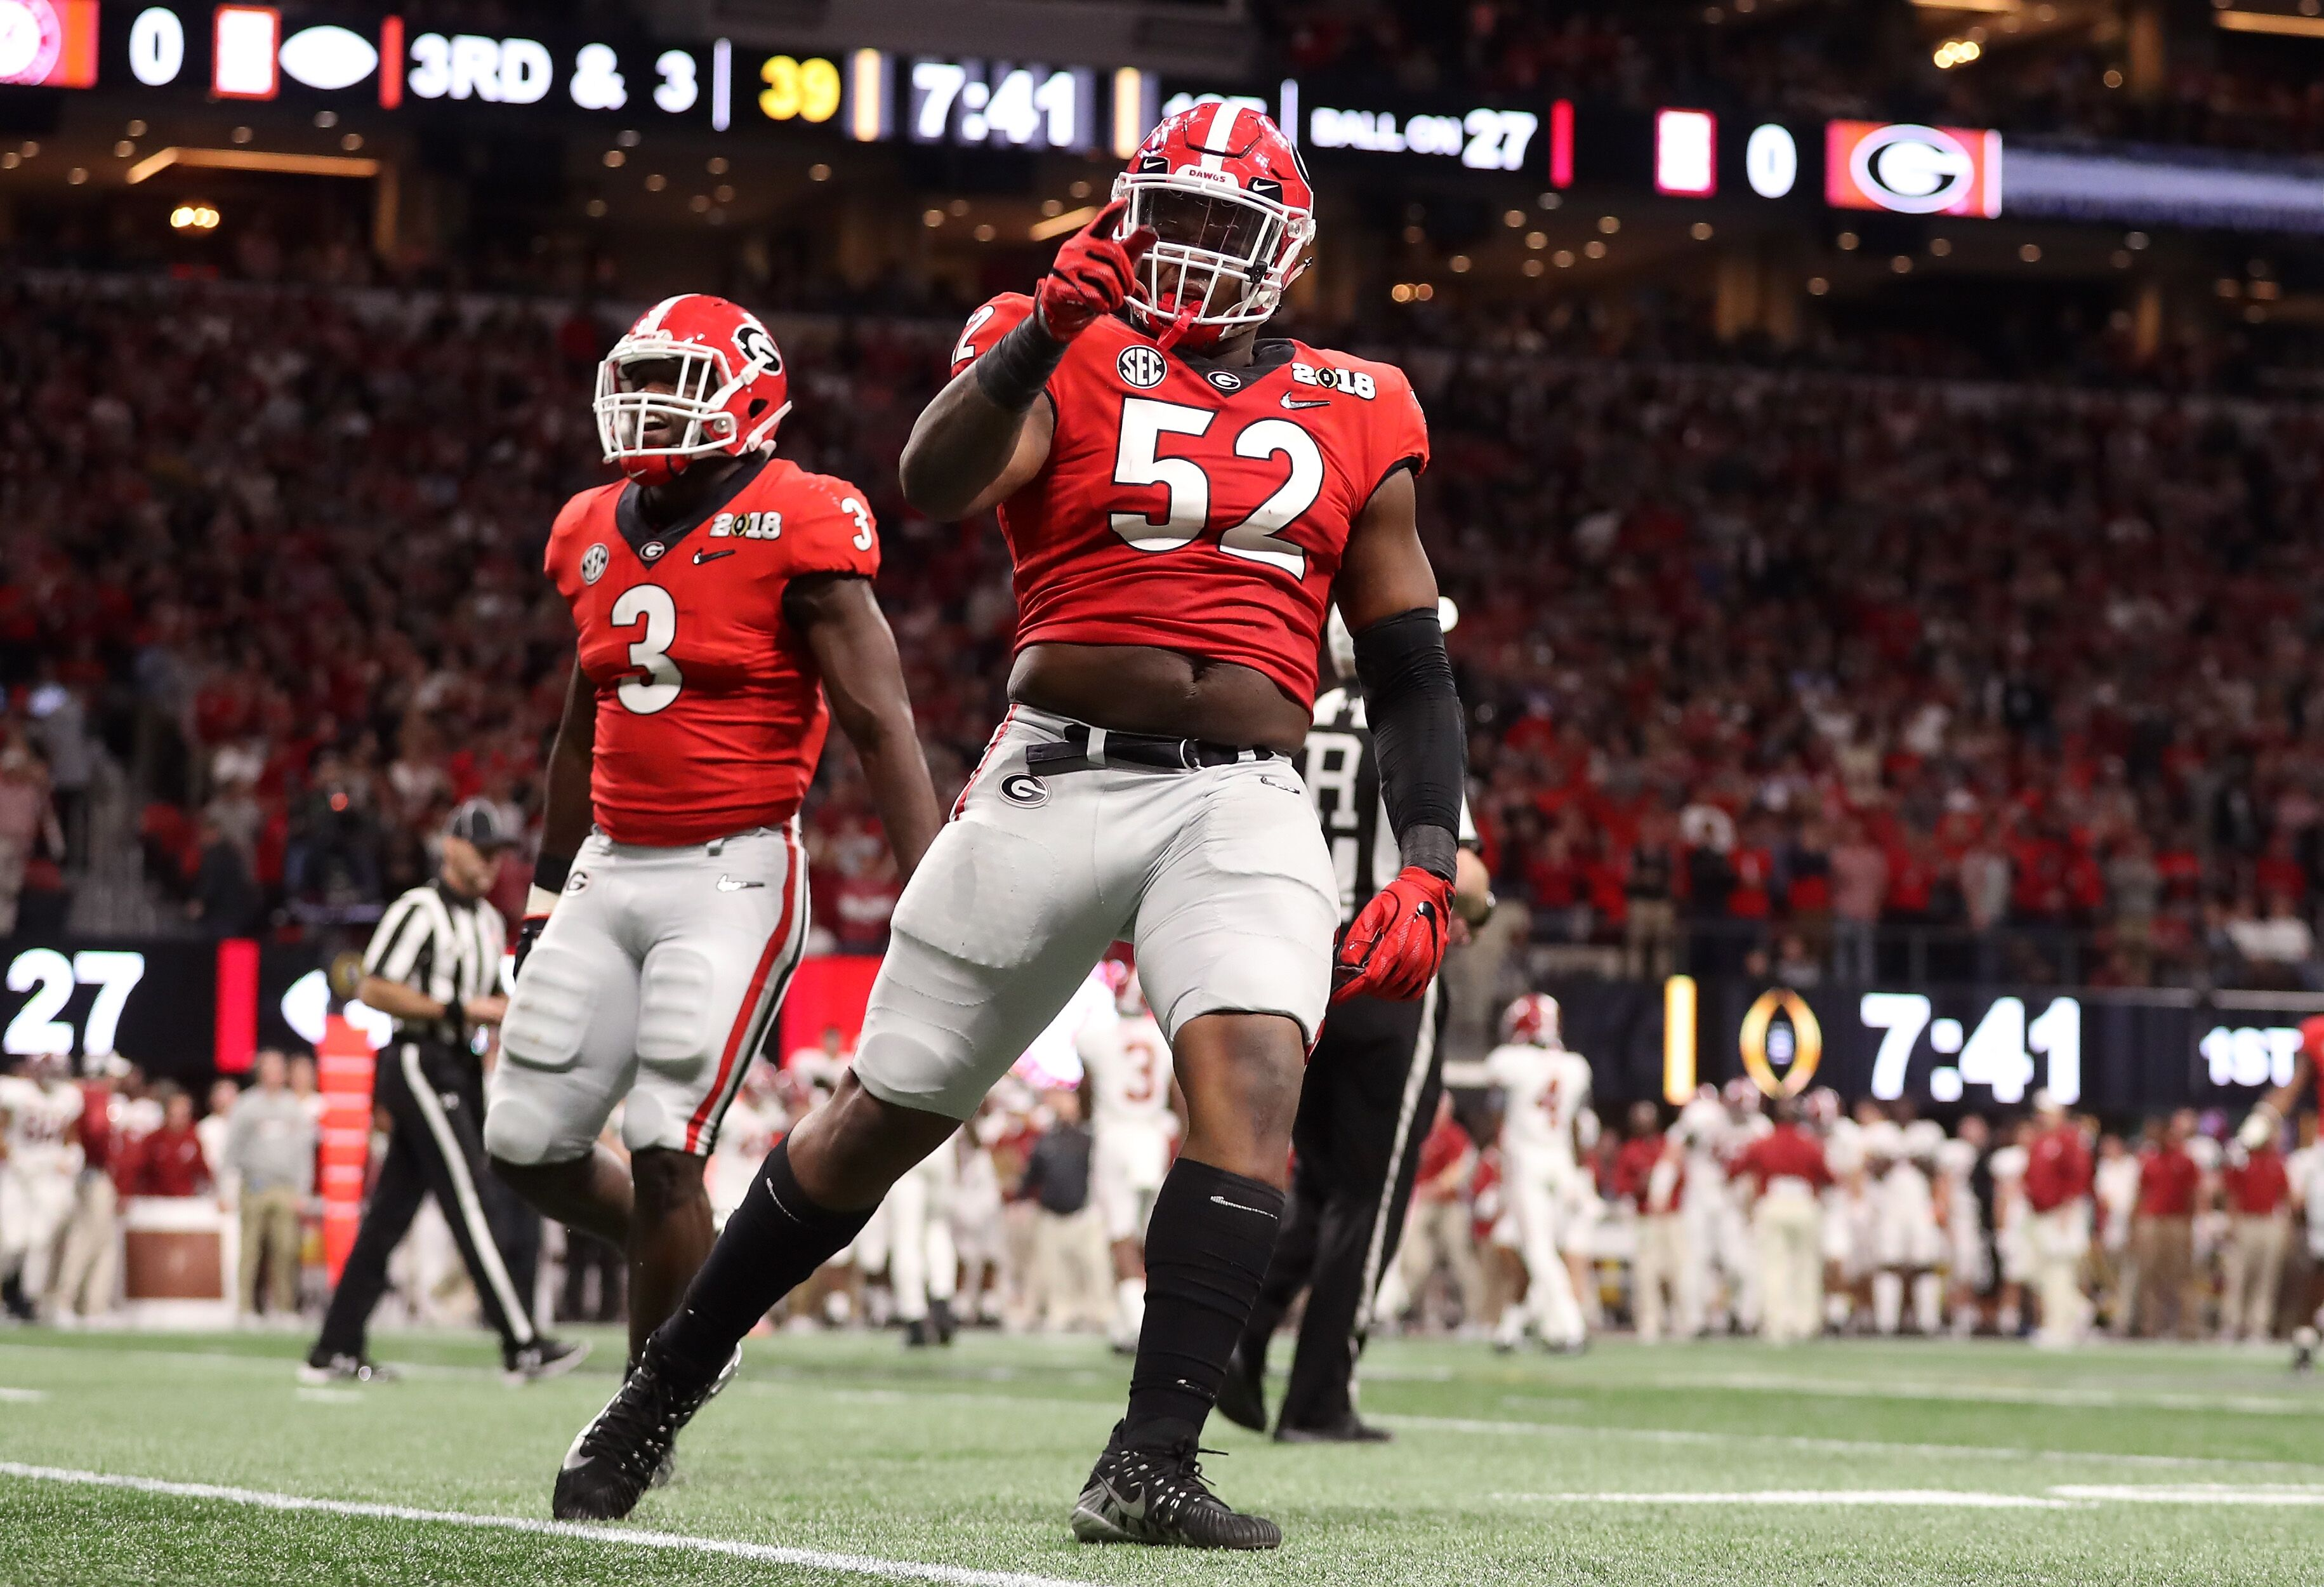 Gaps to fill for Georgias defense 23 hours ago SEC Network analyst Gene Chizik asks the big question Can the Bulldogs replace their talent and depth lost on defense